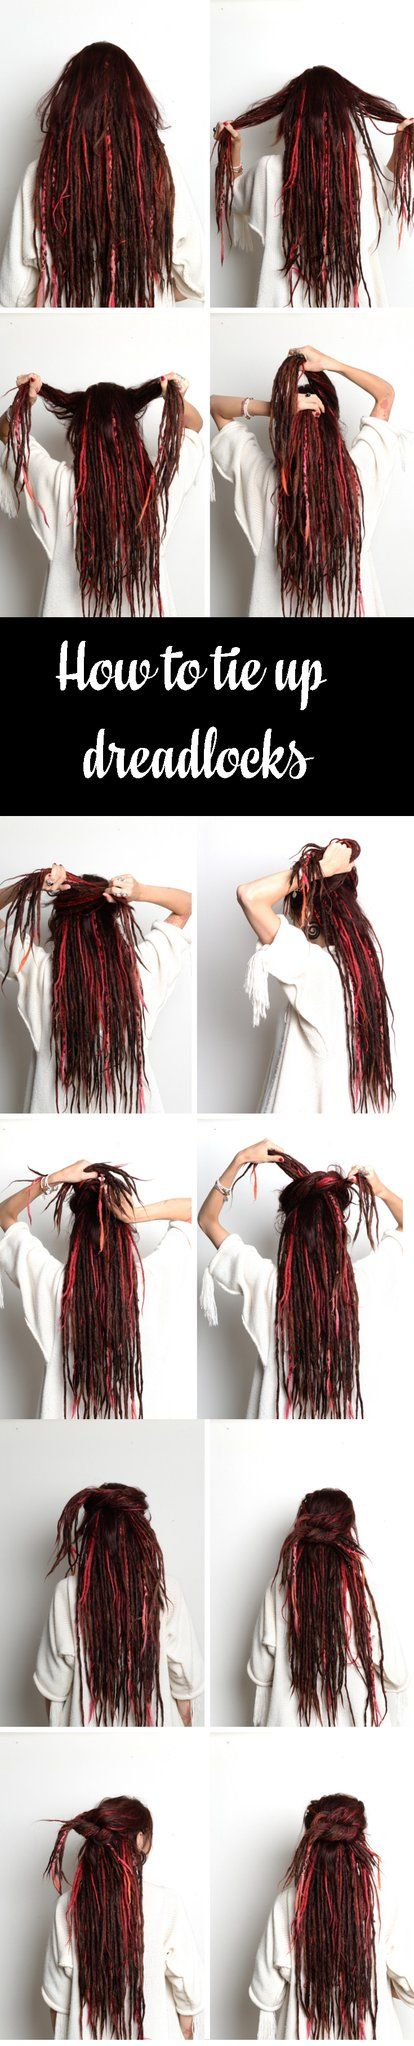 One of the most easiest ways to get a fast dreadlock style is to tie up your dreadlocks. Here you have step by step instructions on how you can make this simple